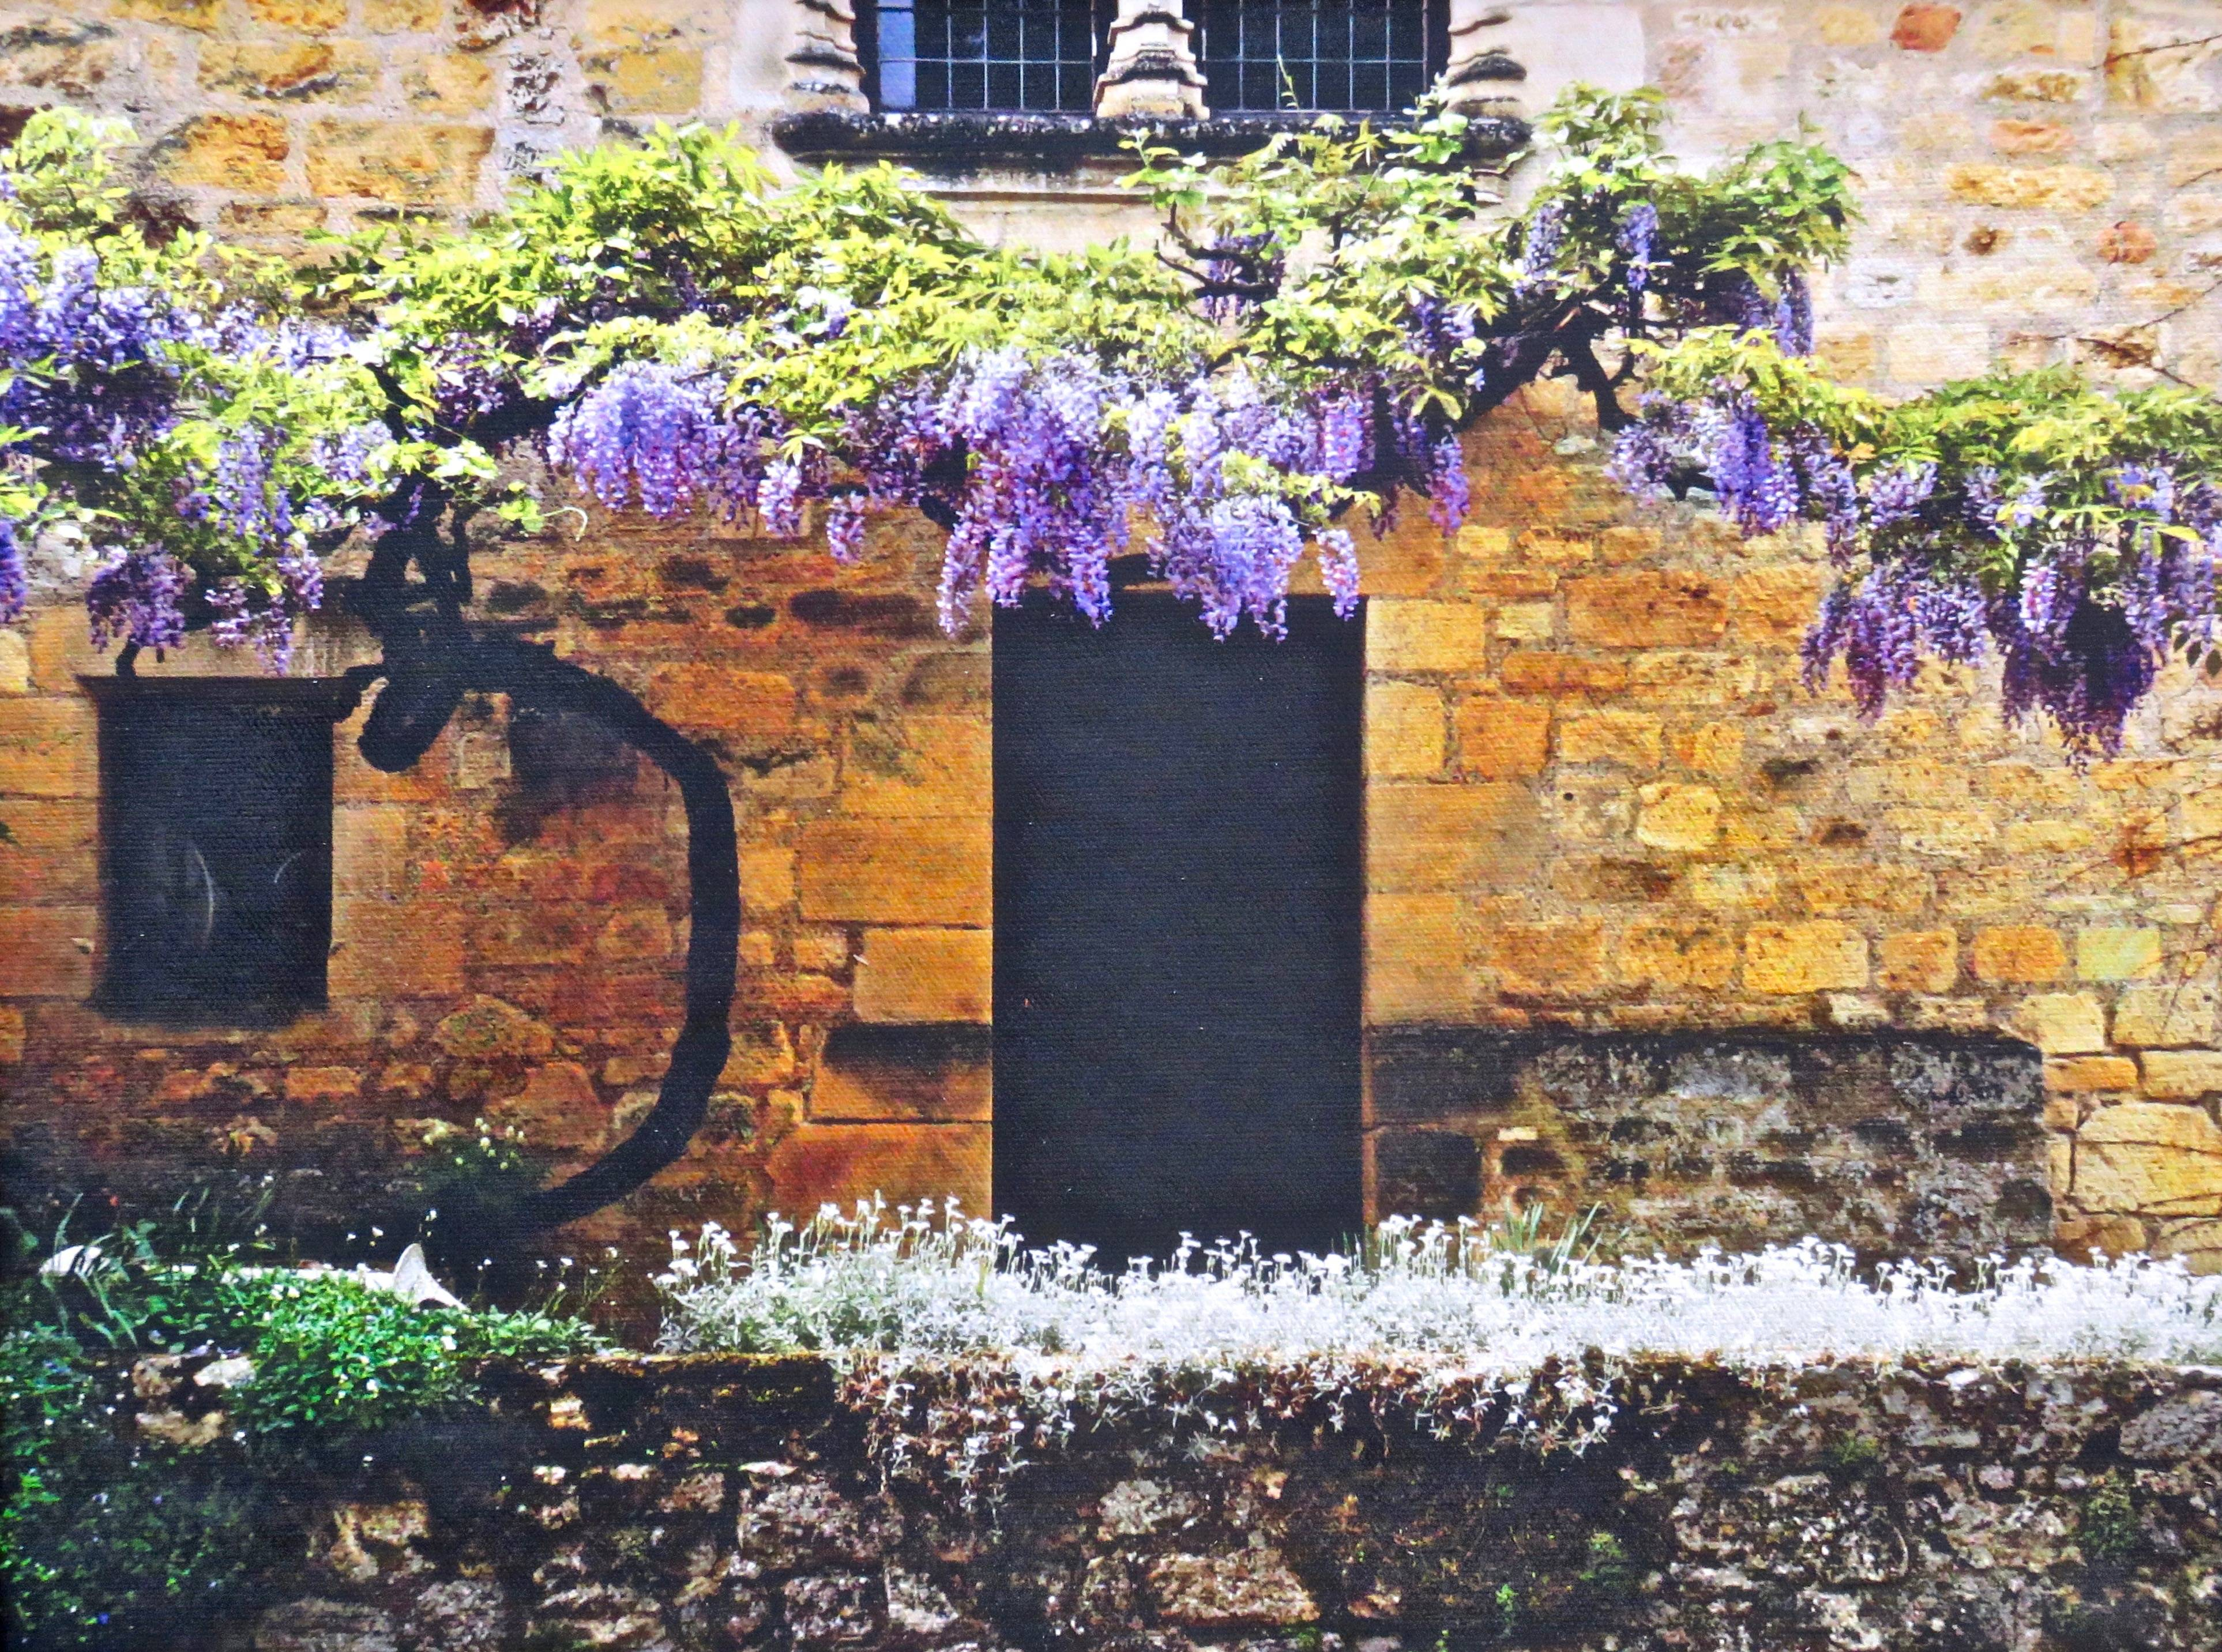 Wisteria in Domme, France